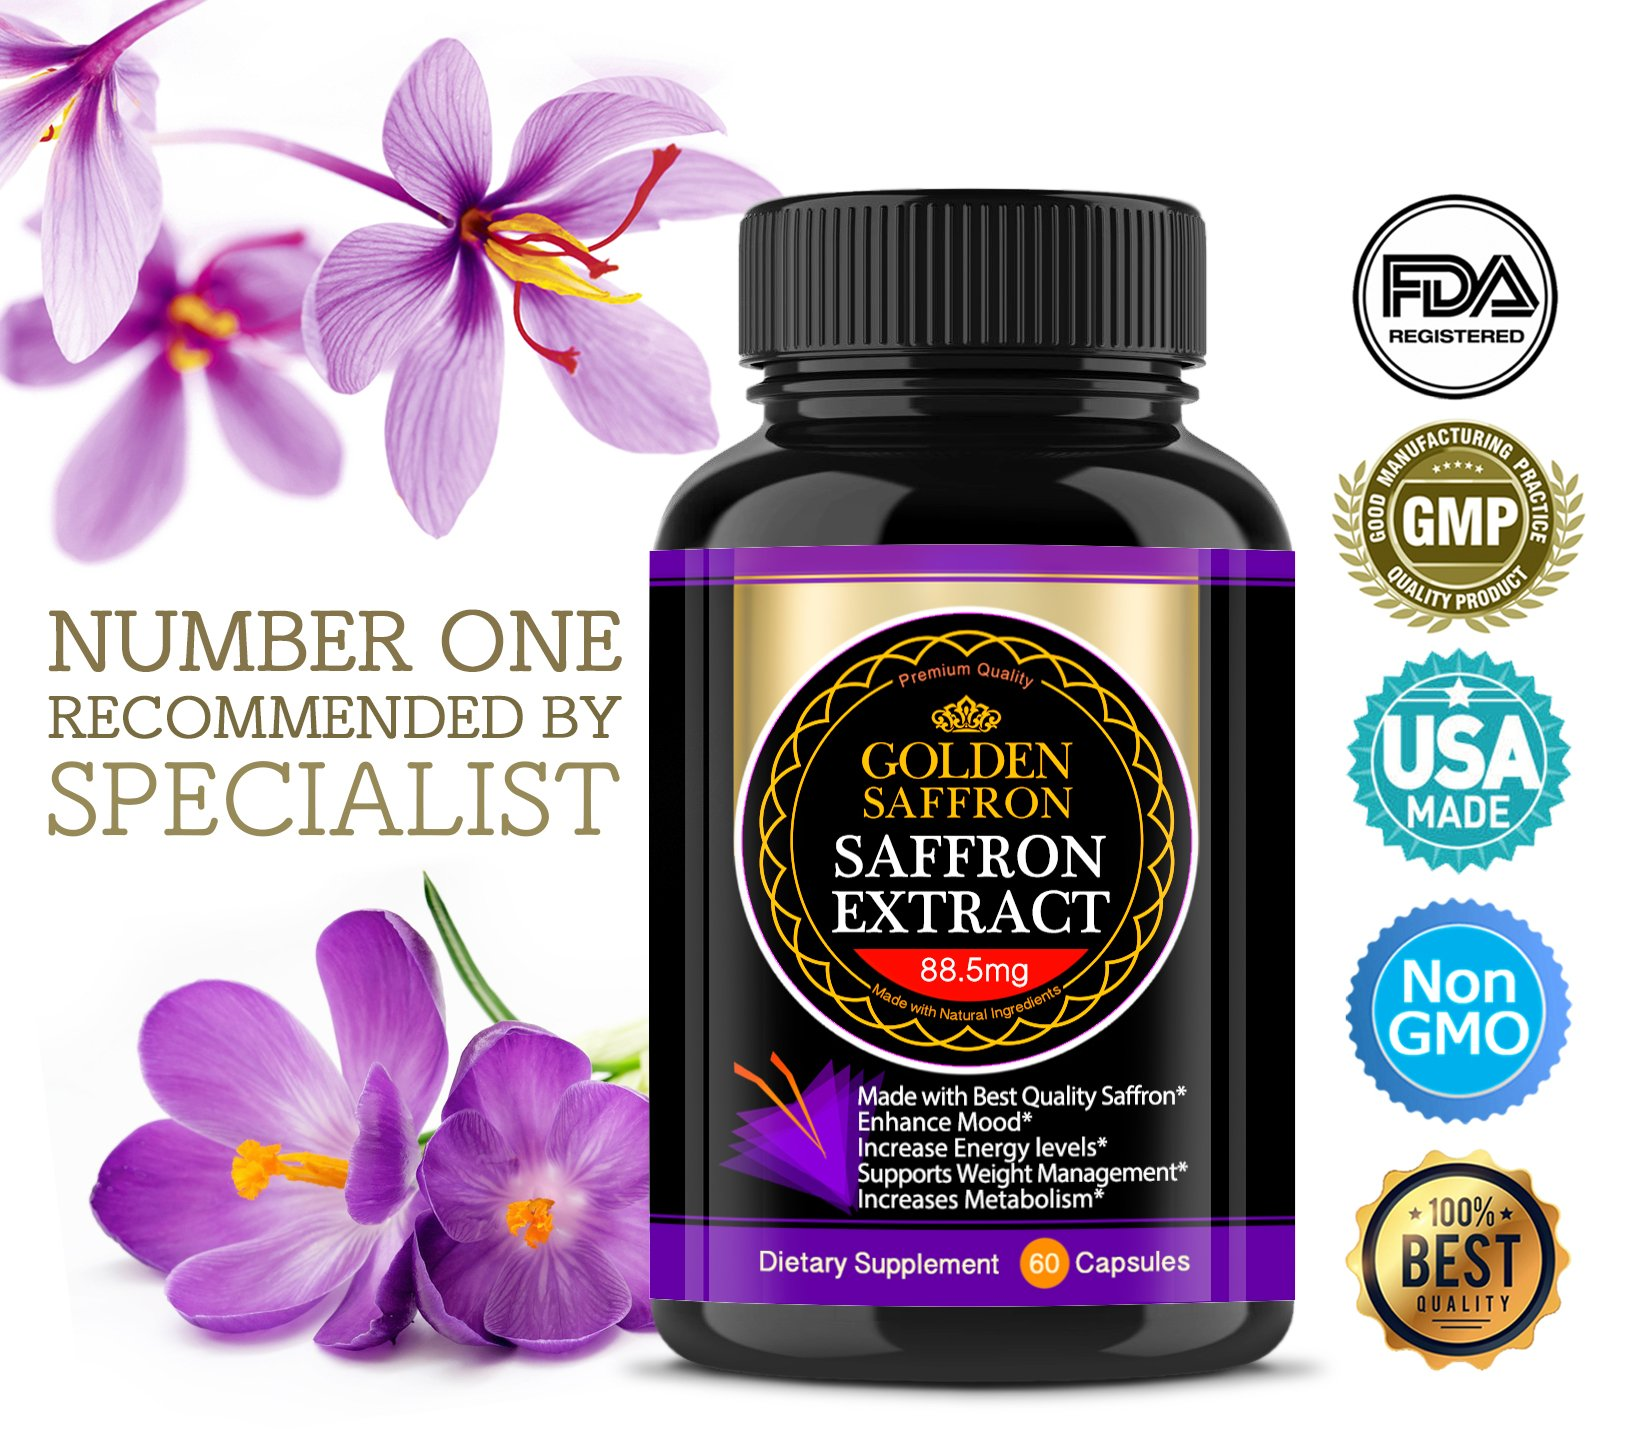 Golden Saffron, Saffron Extract 8825 (Vegetarian) - Best All Natural Appetite Suppressant That Works - 88.5 mg per capsule - Manufactured by Highest Quality Saffron, Non-GMO, 30 Day Supply